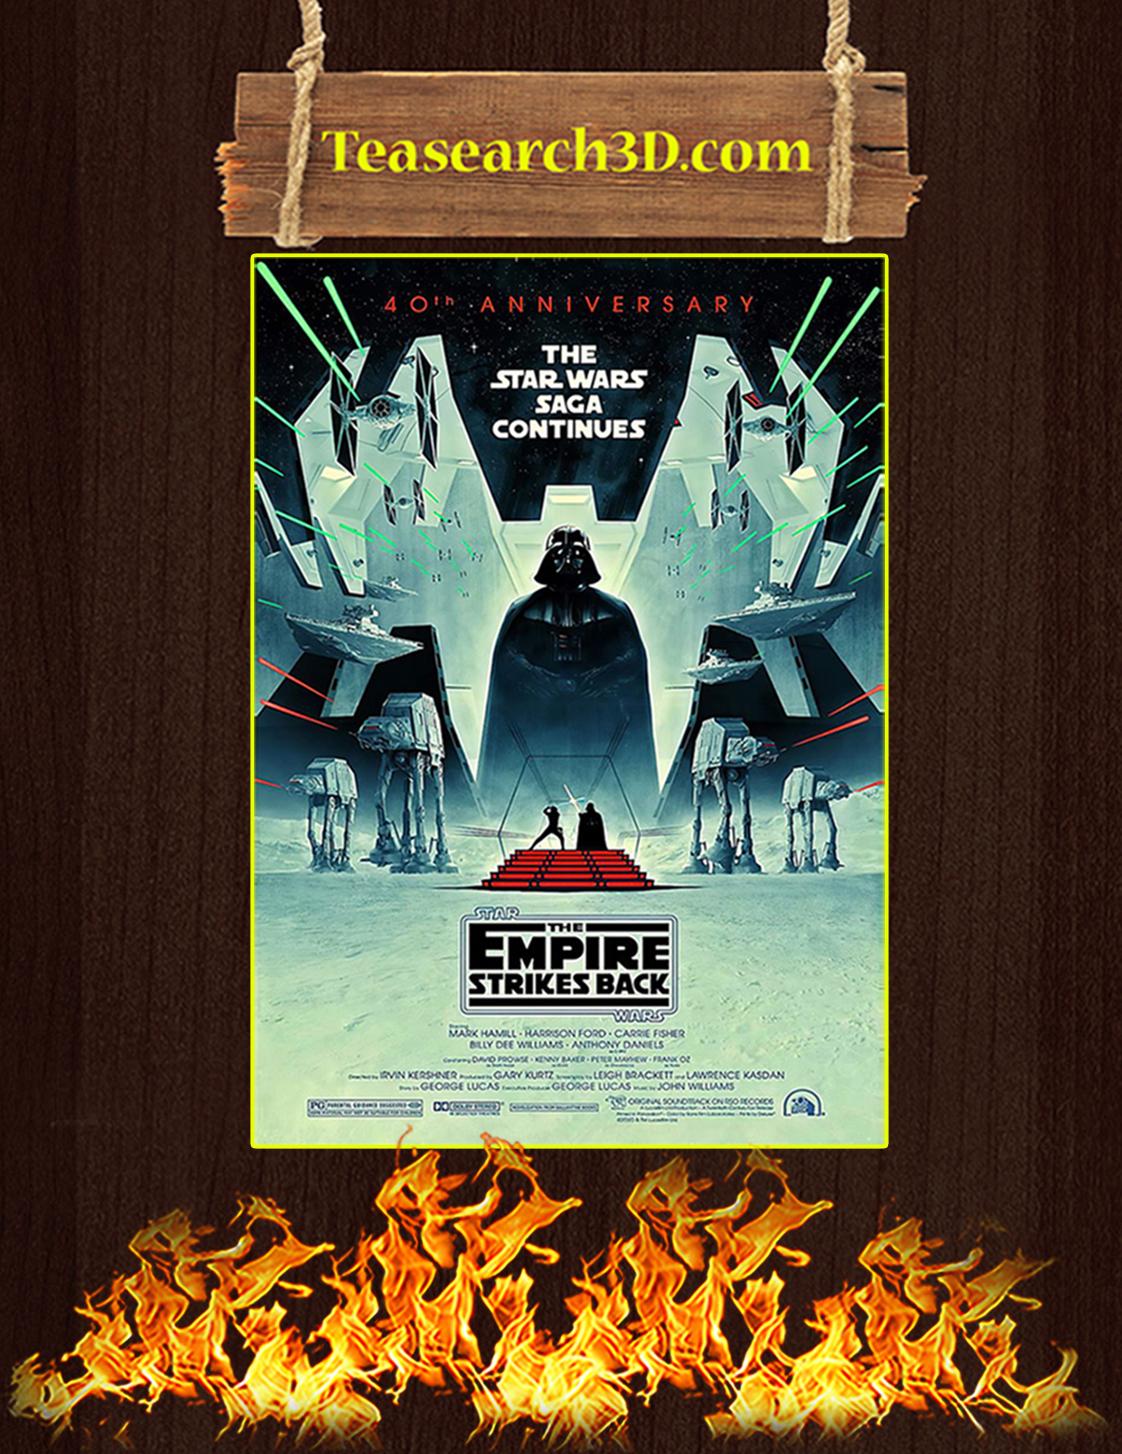 The star wars saga continues 40th anniversary poster A3